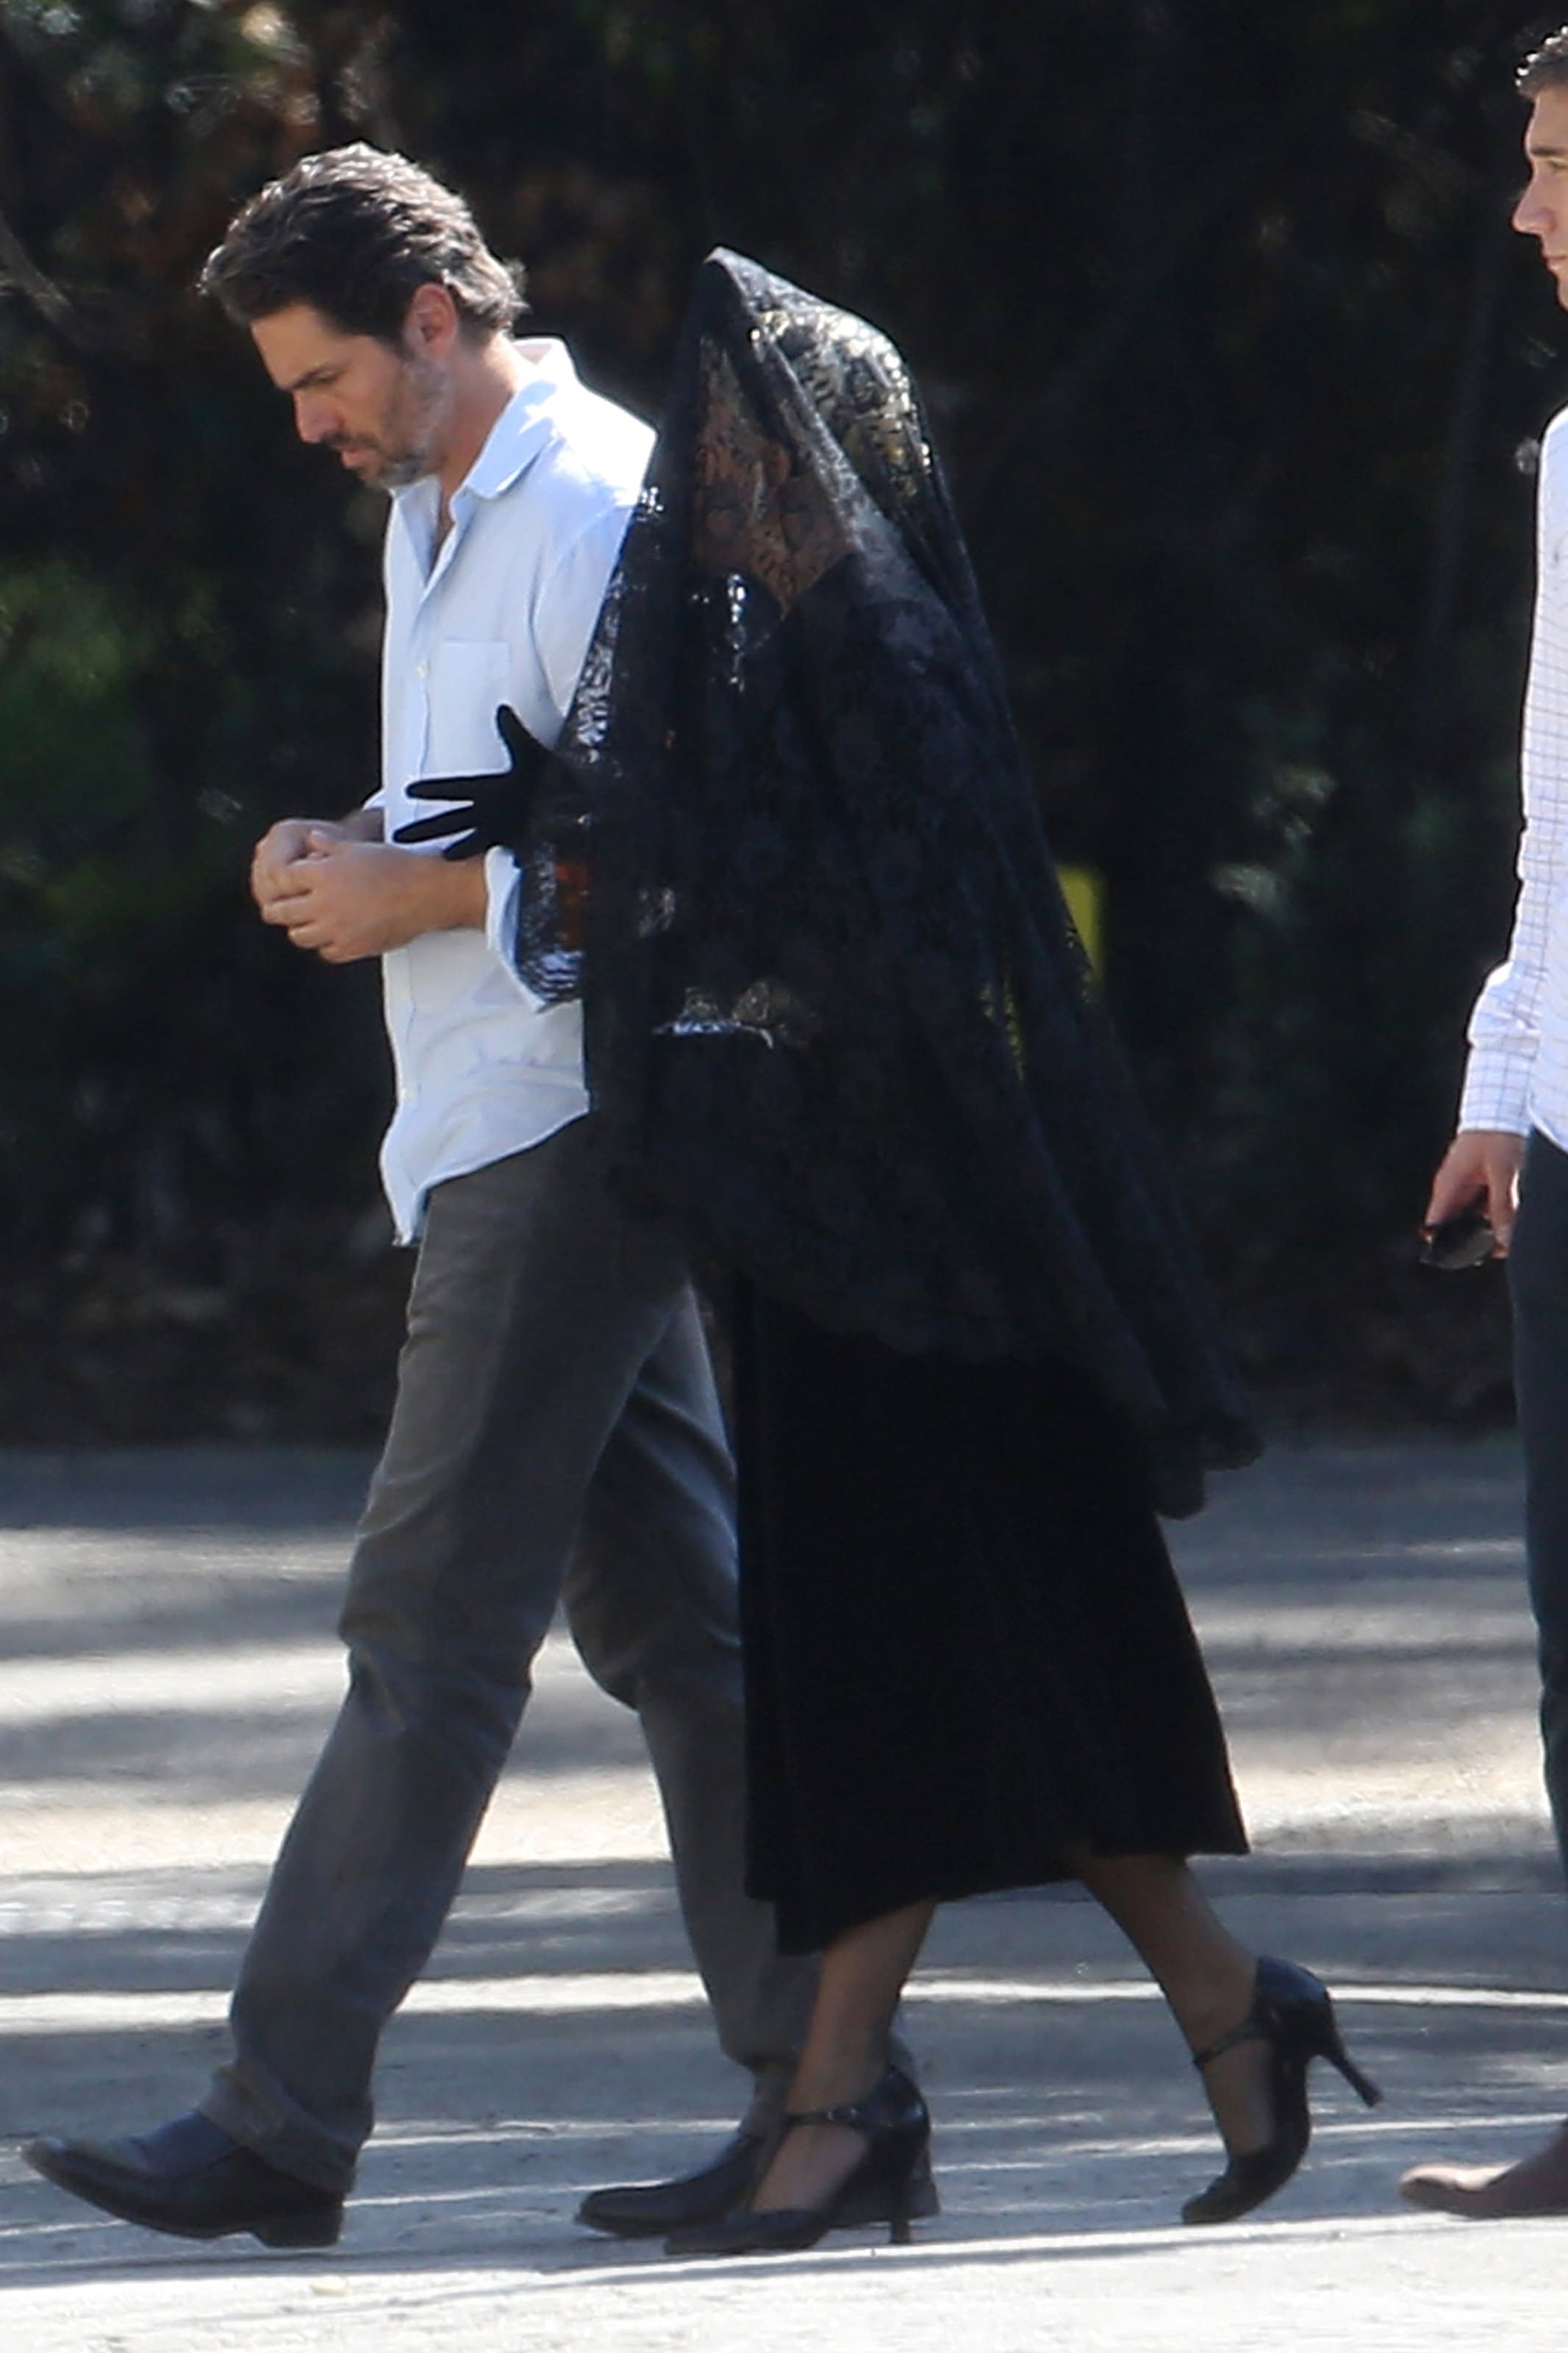 10-13-15-On-the-set-of-AHS-Hotel-in-LA-0